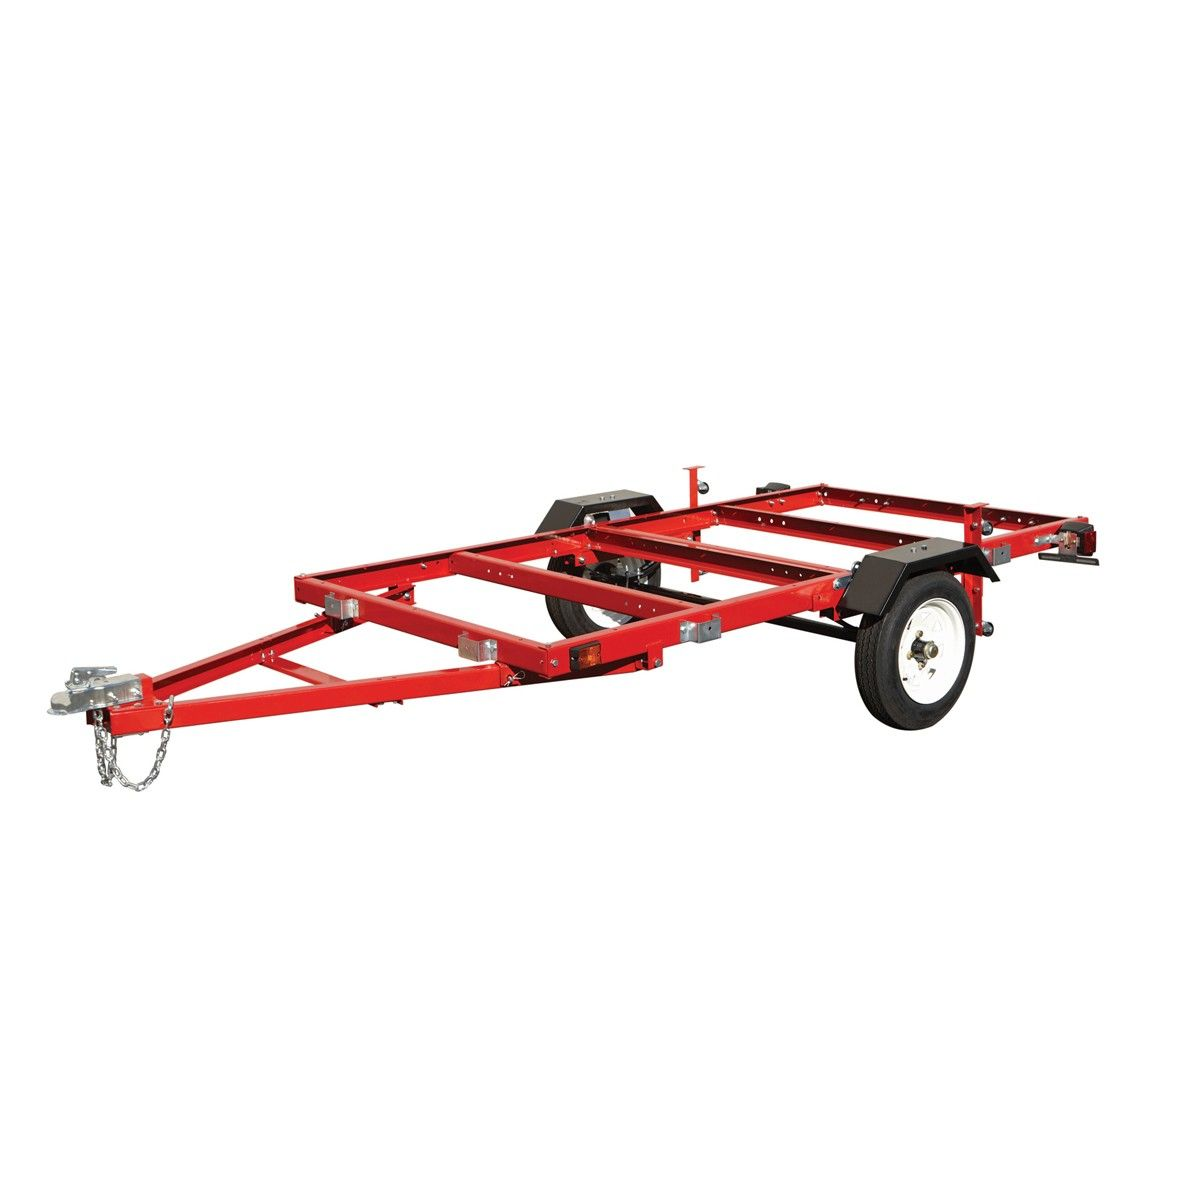 "Harbor freight. Haul-Master 90154 1195 Lb. Capacity Heavy Duty Folding  Utility Trailer, 48"" x 96"" Great base for kayak trailer, 12 "" wheels"